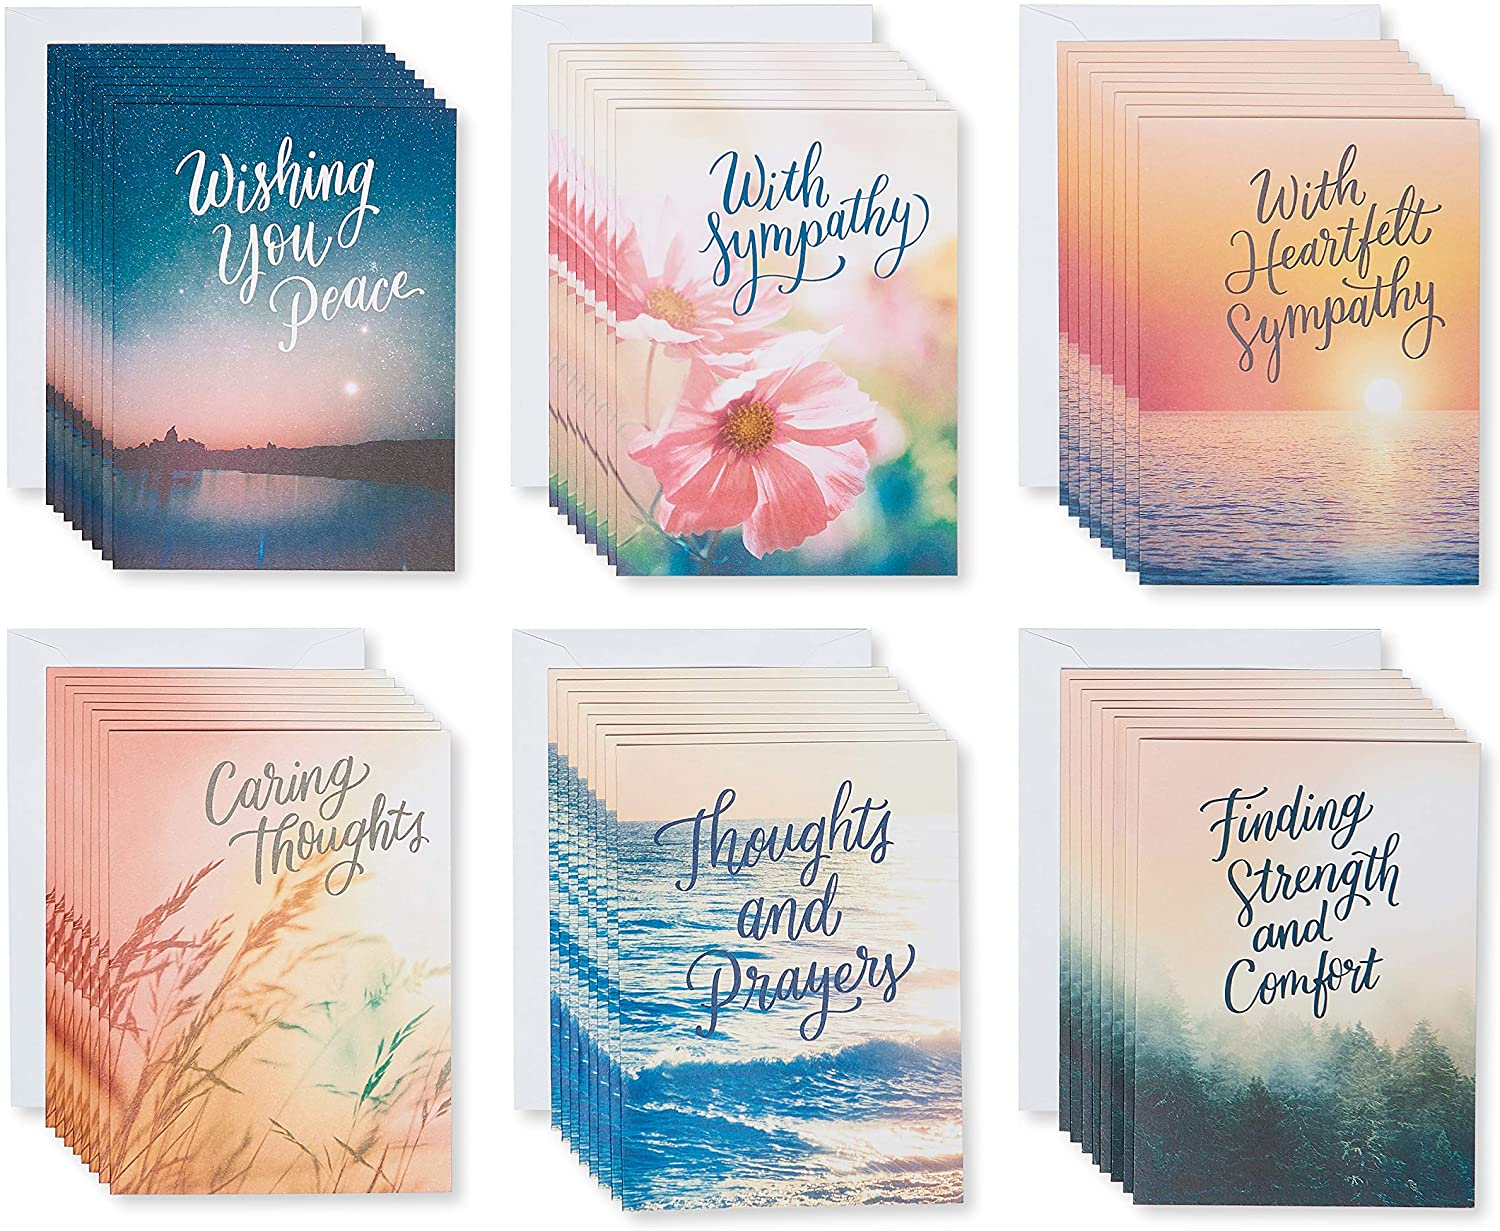 American Greetings Sympathy Sale Card 48-Count Assortment Nature Inexpensive